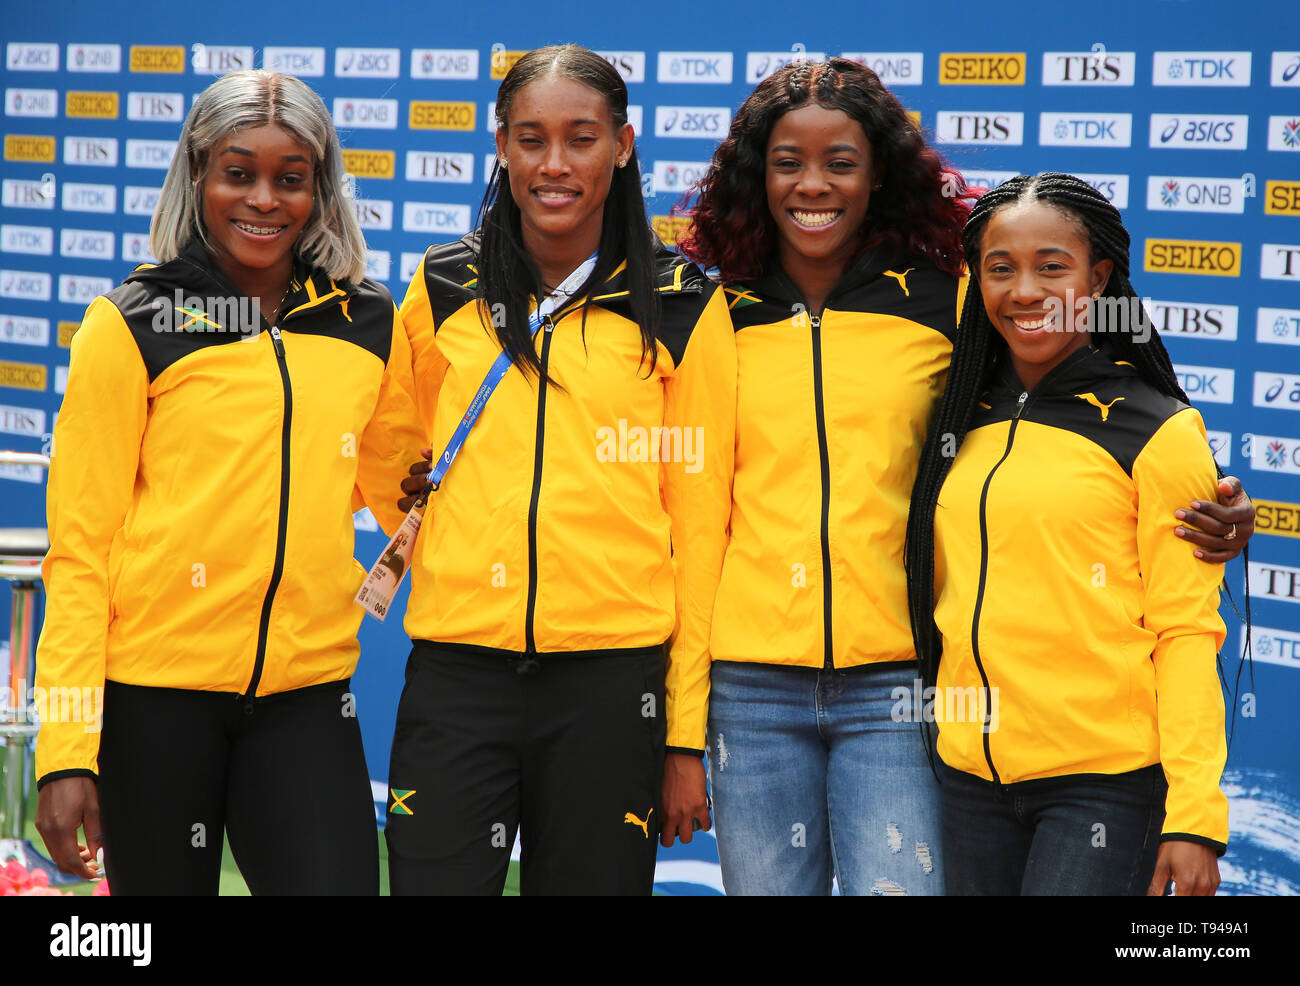 YOKOHAMA, JAPAN - MAY 10: Jamaica's women's 4x200m team (Shelly-Ann Fraser-Pryce, Shericka Jackson, Stephenie Ann McPherson, Elaine Thompson)  during the official press conference of the 2019 IAAF World Relay Championships at the Nissan Stadium on May 10, 2019 in Yokohama, Japan. (Photo by Roger Sedres for the IAAF) Stock Photo